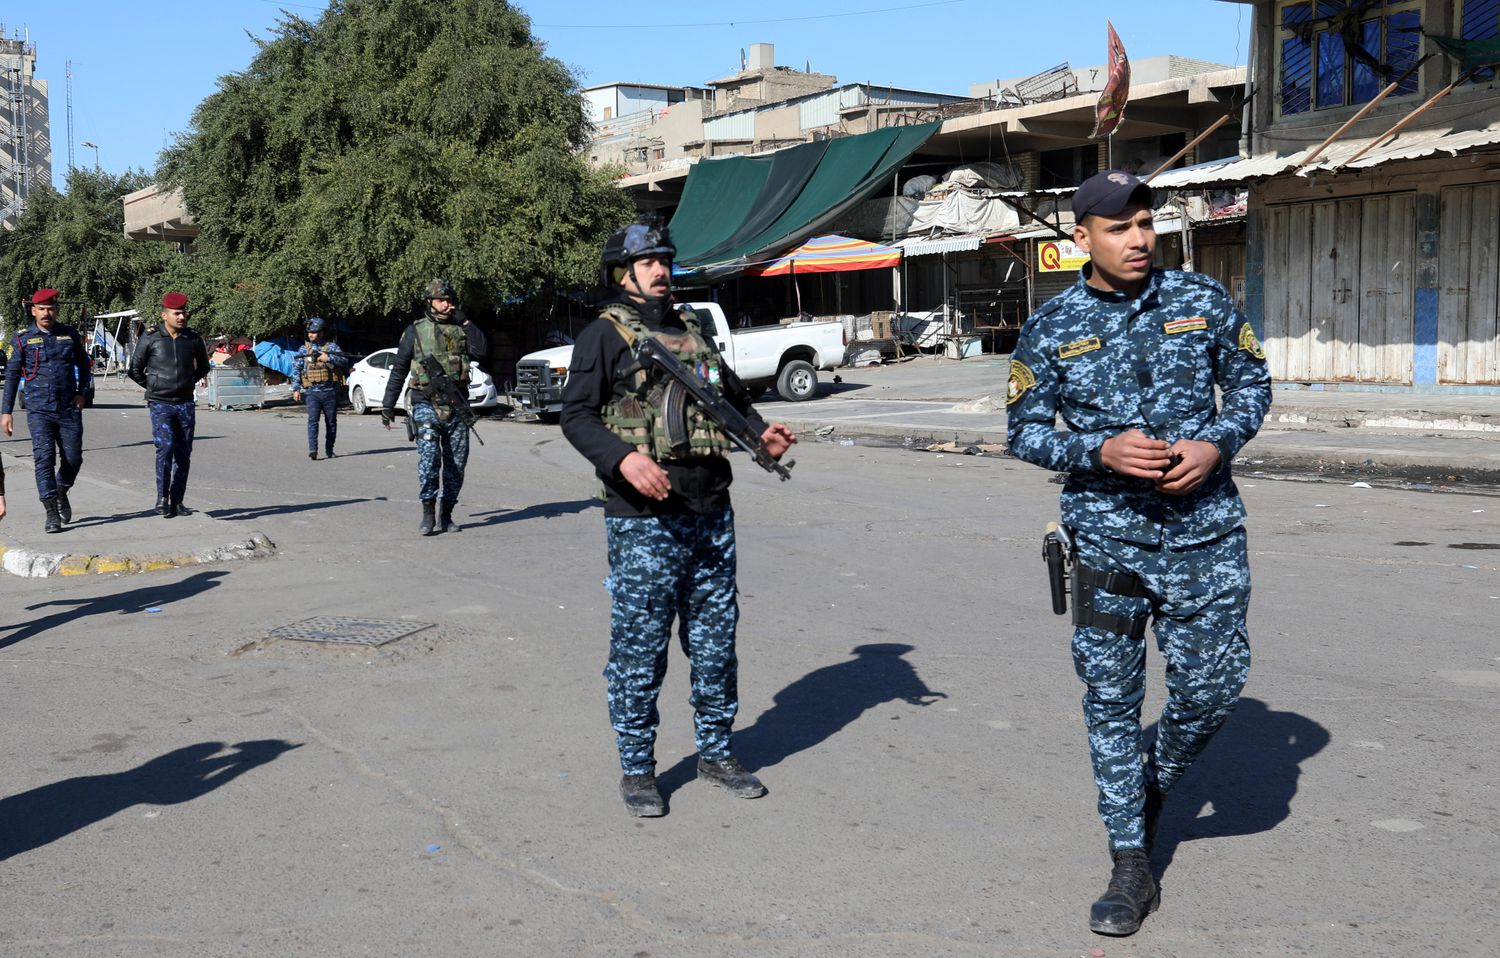 ISIS Takes Responsibility For Double Suicide Bombing In Baghdad Market